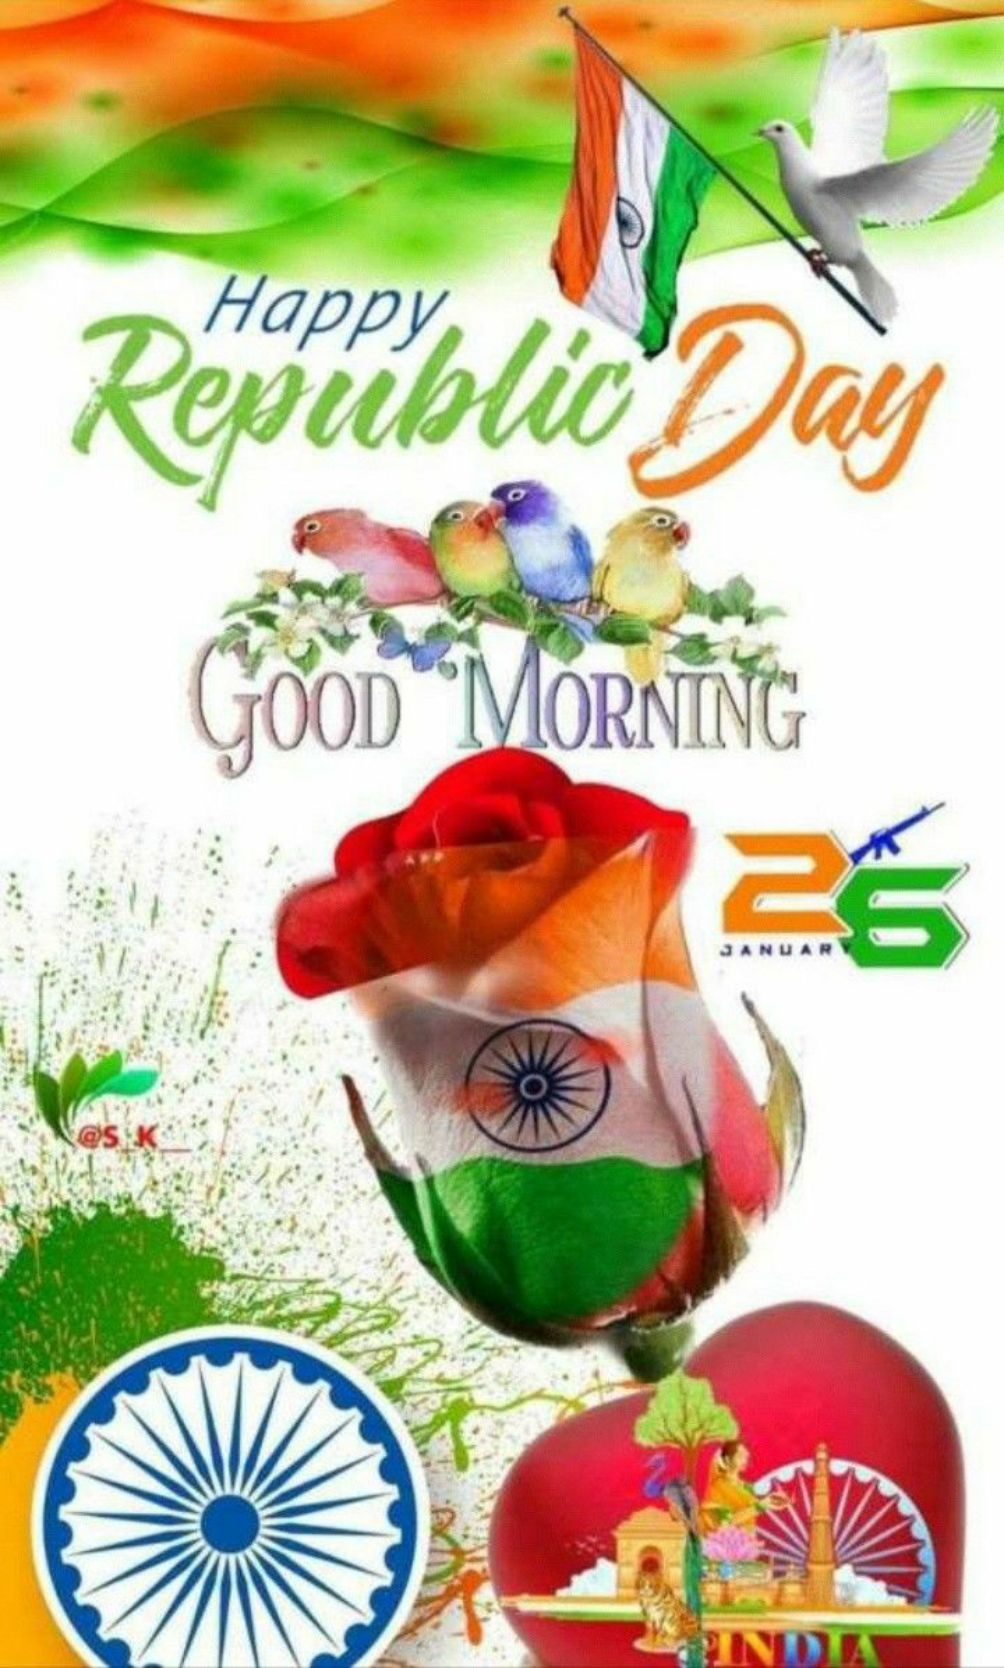 🌞 ഗുഡ് മോണിംഗ് - Happy Republic Day GOOD MORNING JANU - ShareChat